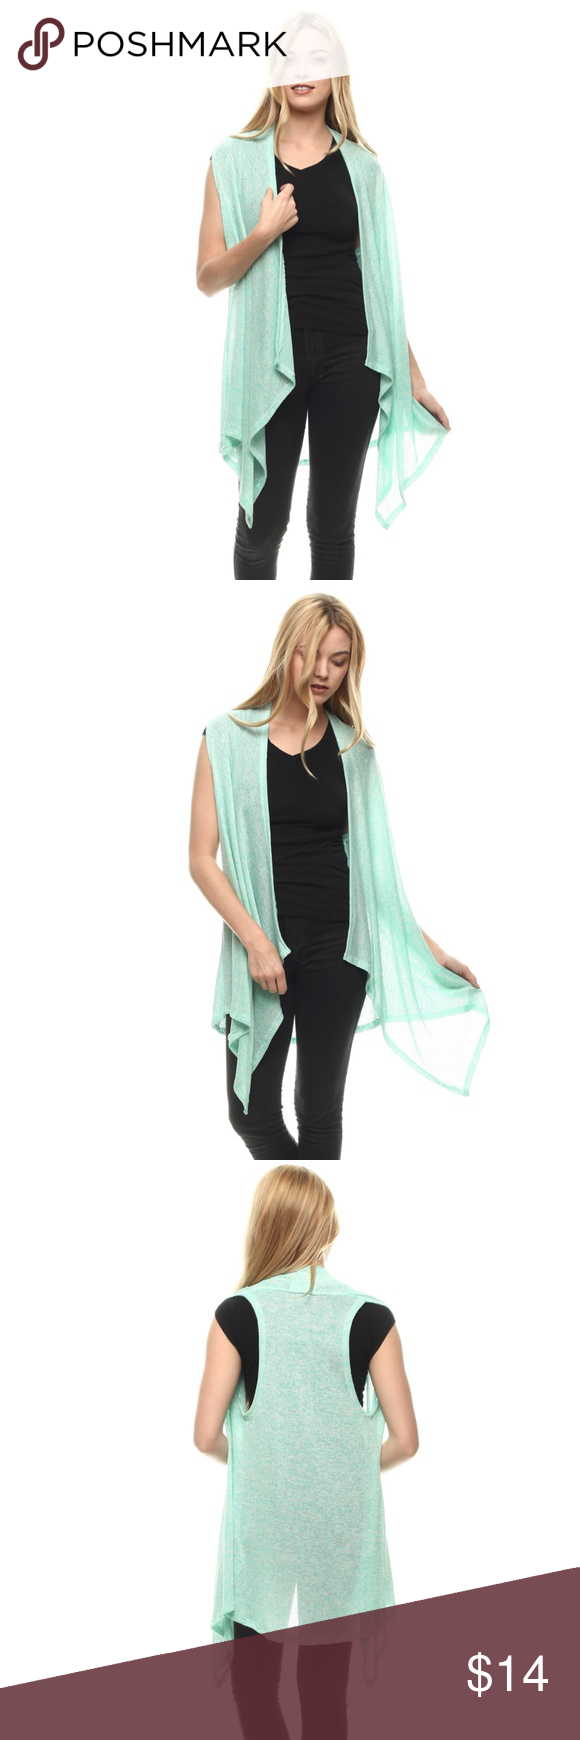 ✨Mint Short Duster FALL EDITION 🍁🍂✨ ✨SUPER CUTE MINT COLORED SWEATER/CARDIGAN✨🍂🍁 HACCI MATERIAL Ships 1-2 business day, I AM A FAST SHIPPER 🛫 YES, these are the real pictures of the item 💁🏻 Sizes available in REGULAR BRAND NEW merchandise only  MADE IN USA! 🇺🇸 Add it to bundle to save more 🤑 Sweaters Cardigans